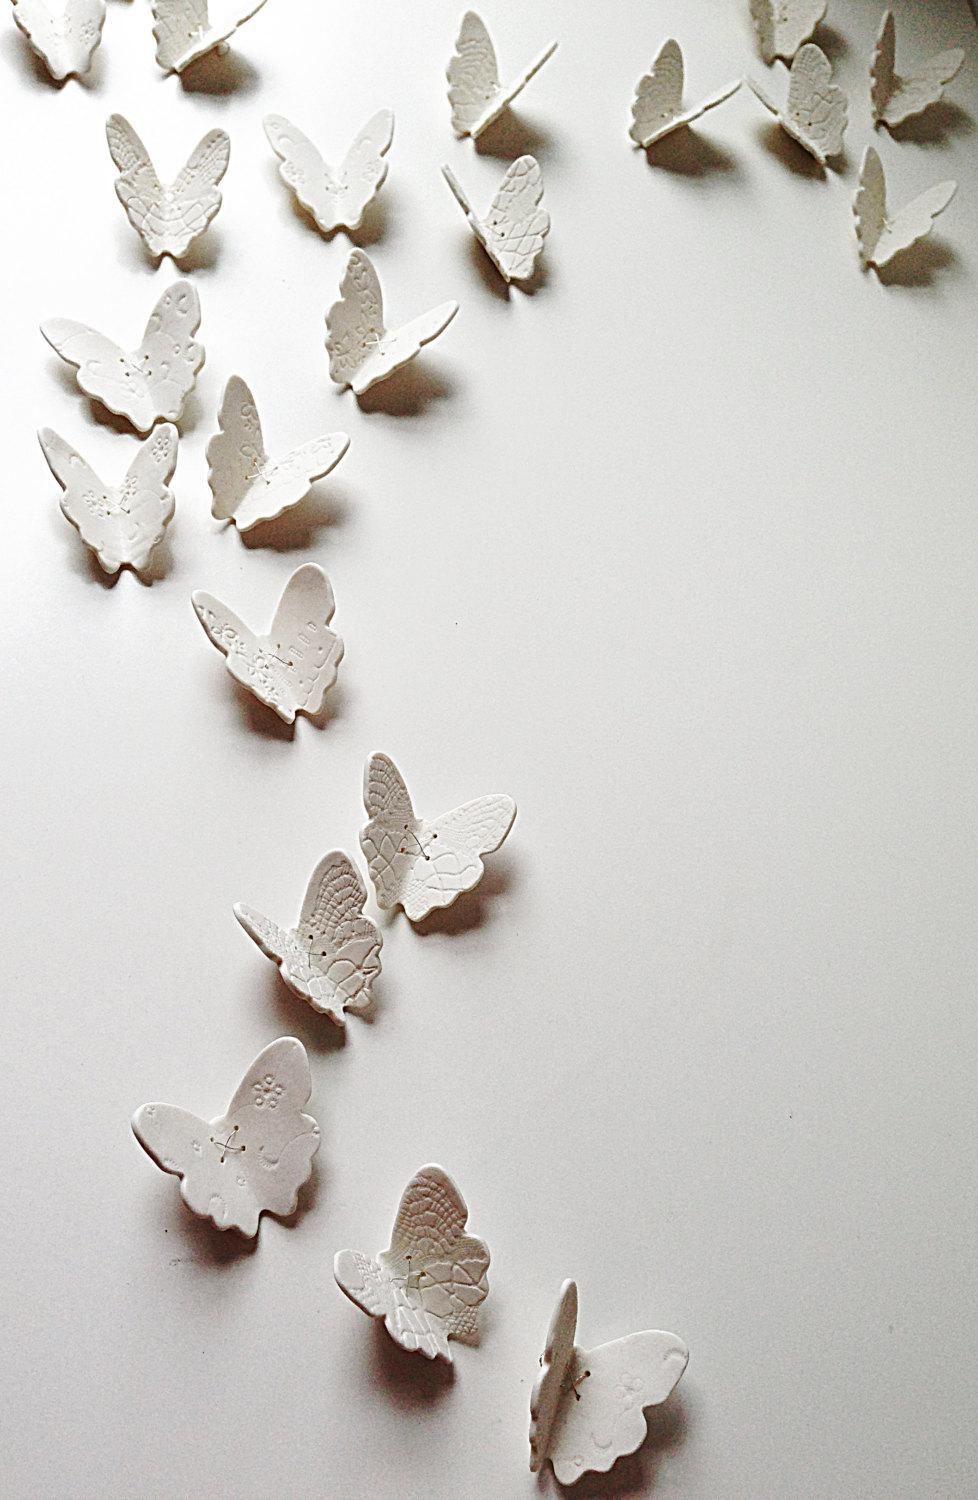 3D Butterfly Wall Art Large Wall Art Set 21 White Porcelain Pertaining To Ceramic Butterfly Wall Art (Image 4 of 20)